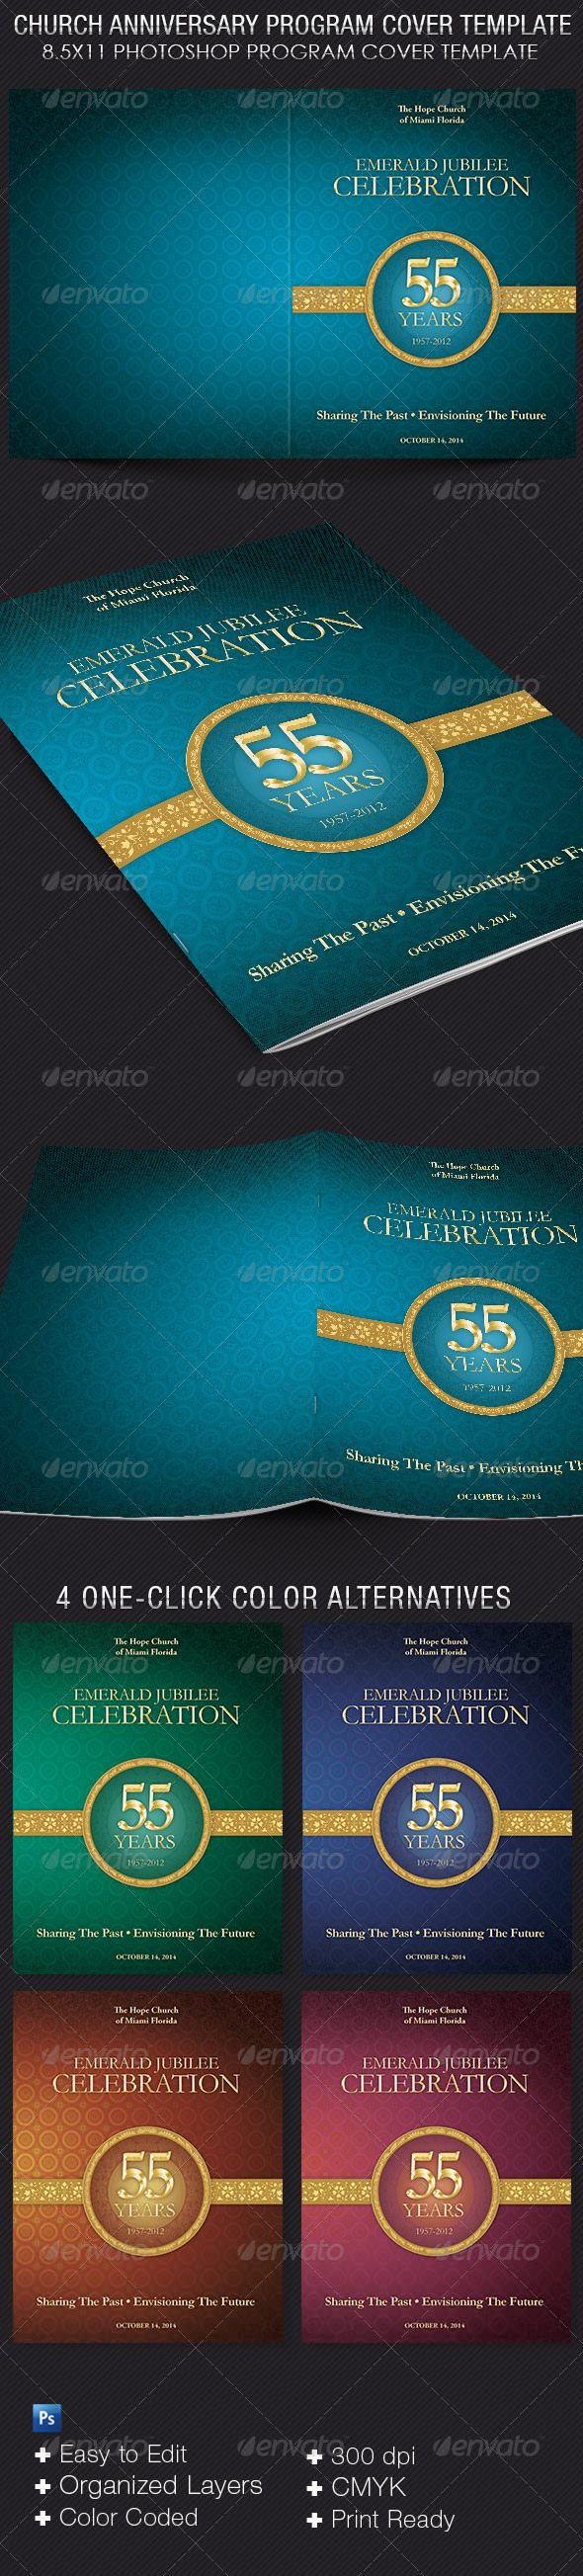 church anniversary program cover template on behance. Black Bedroom Furniture Sets. Home Design Ideas